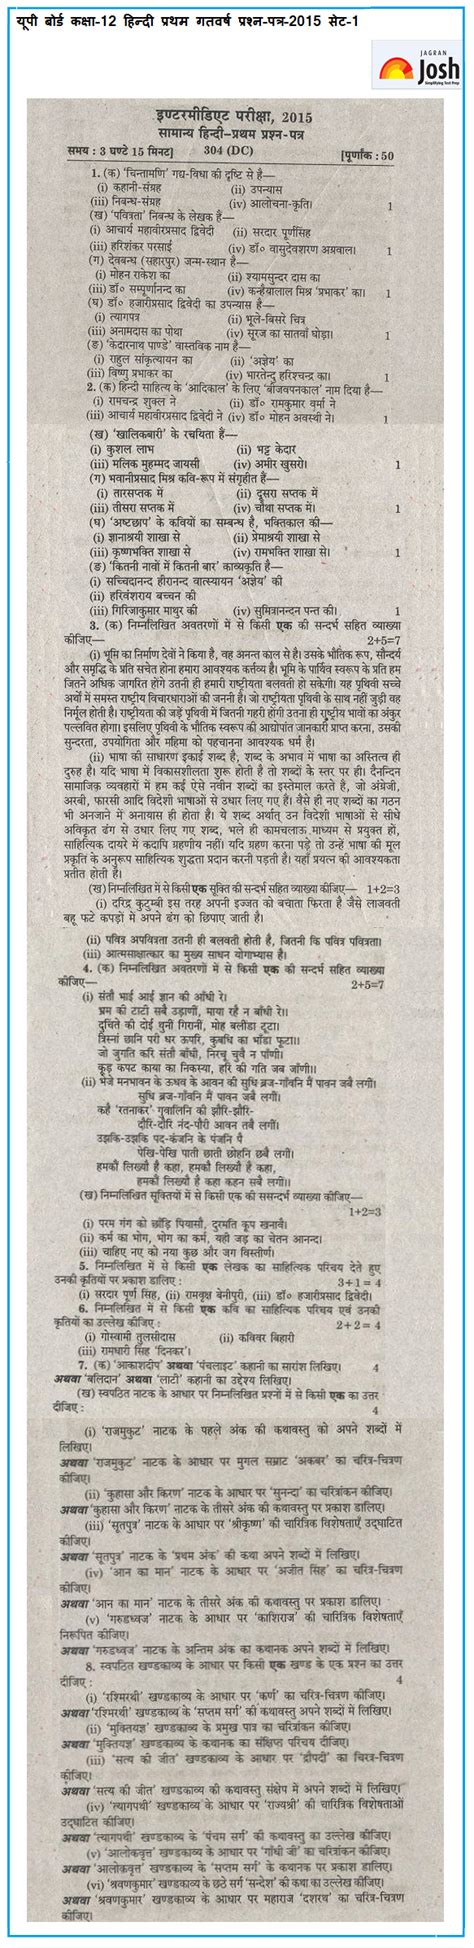 Hindi essay for class 12th png 583x2397